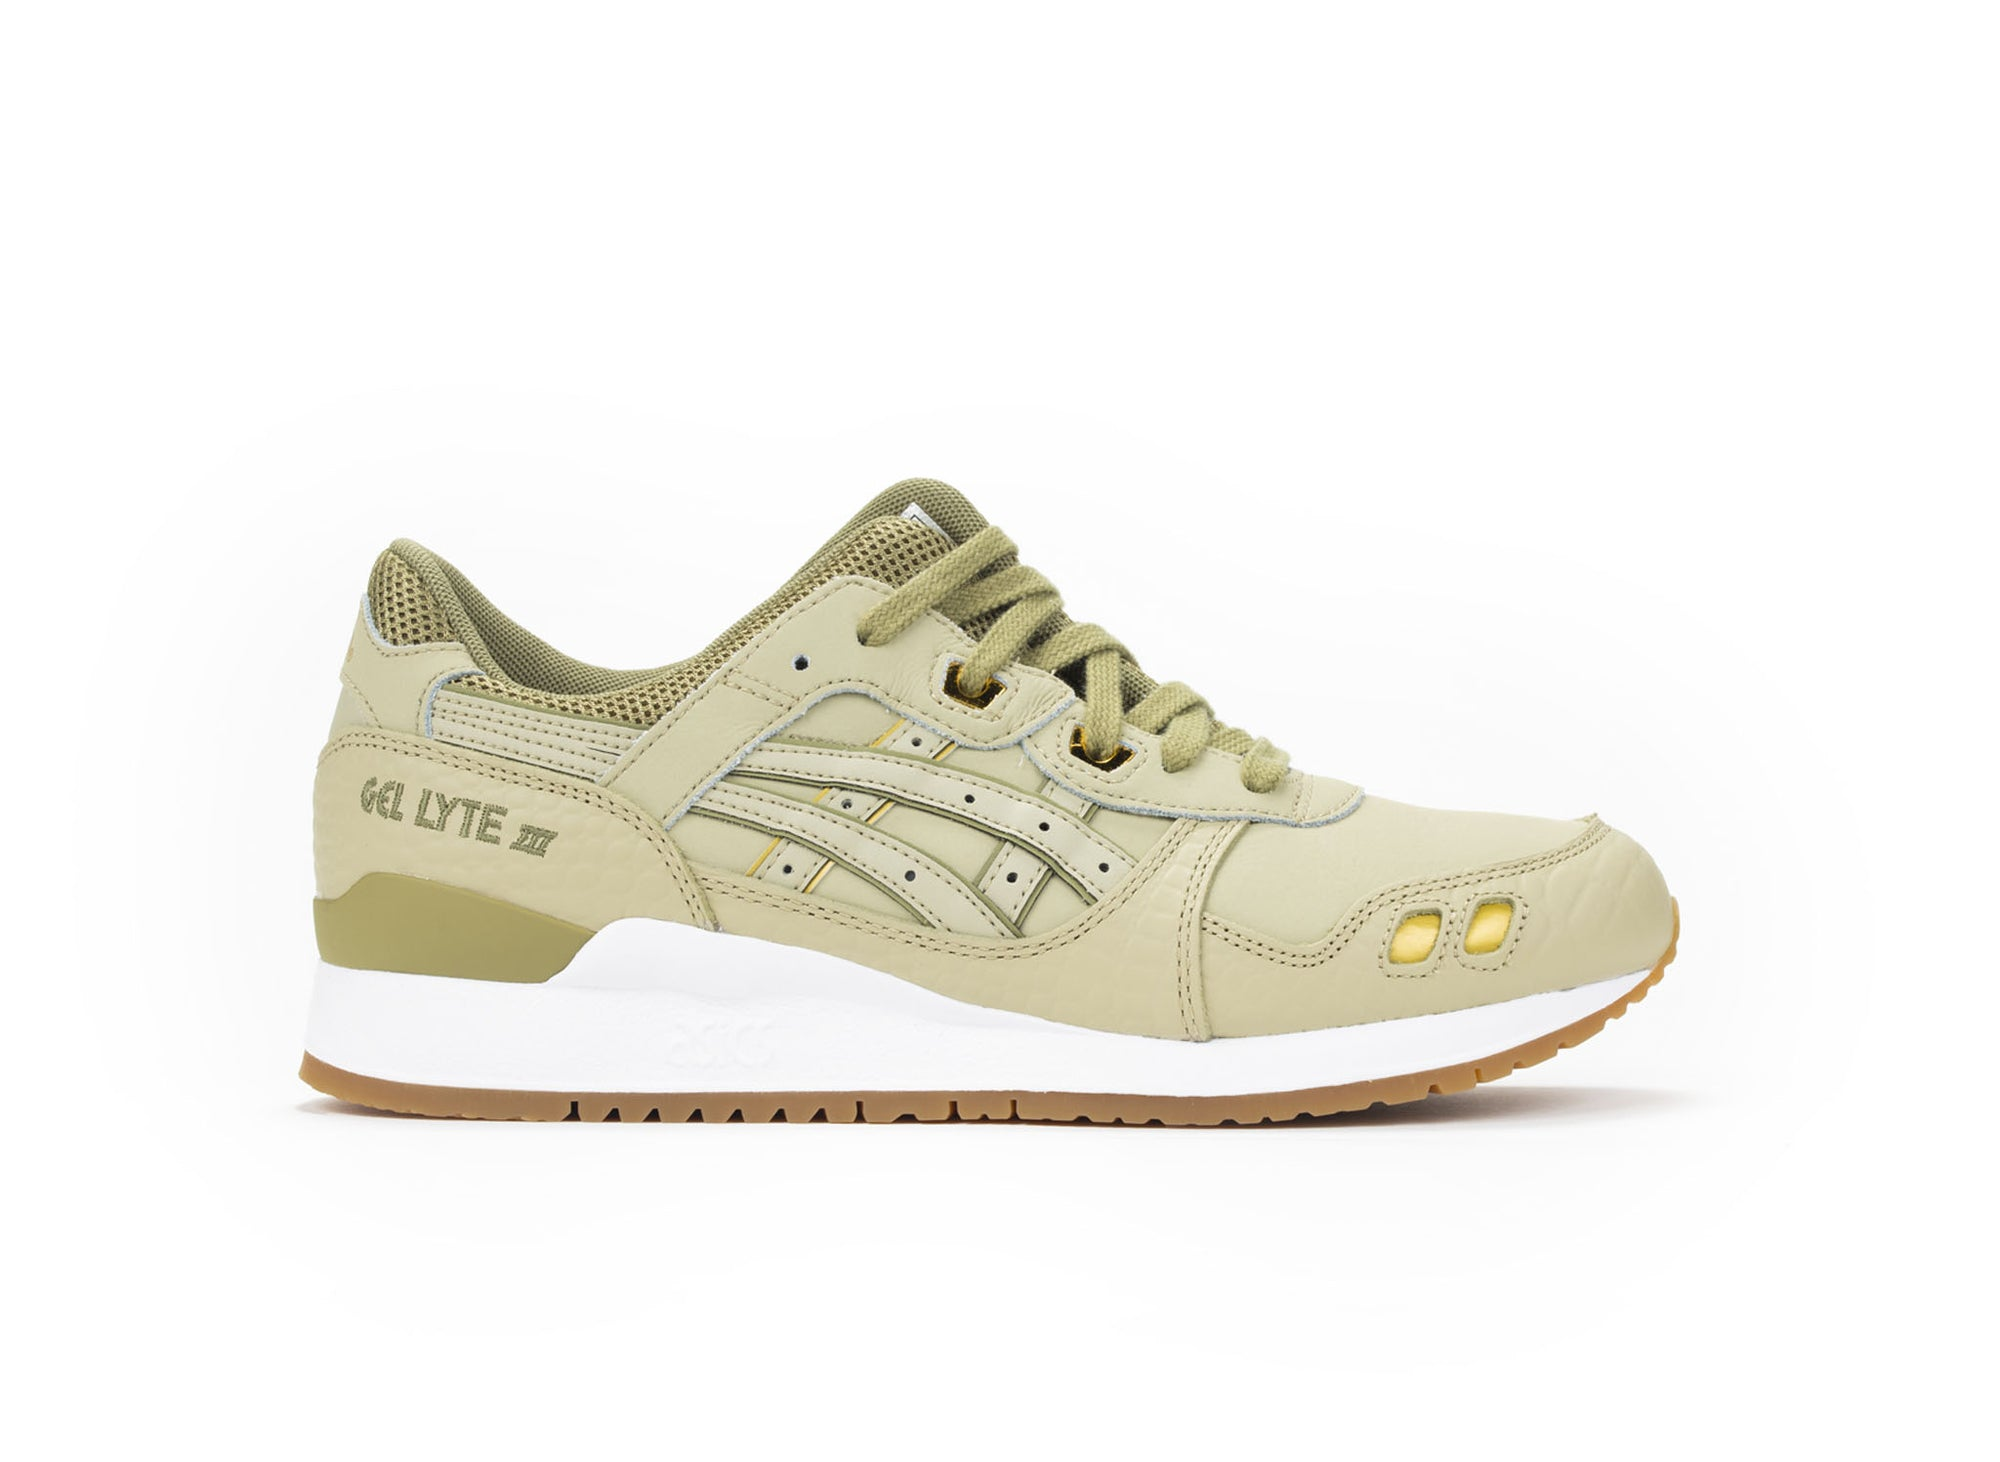 competitive price b2365 28a45 ASICS GEL LYTE III